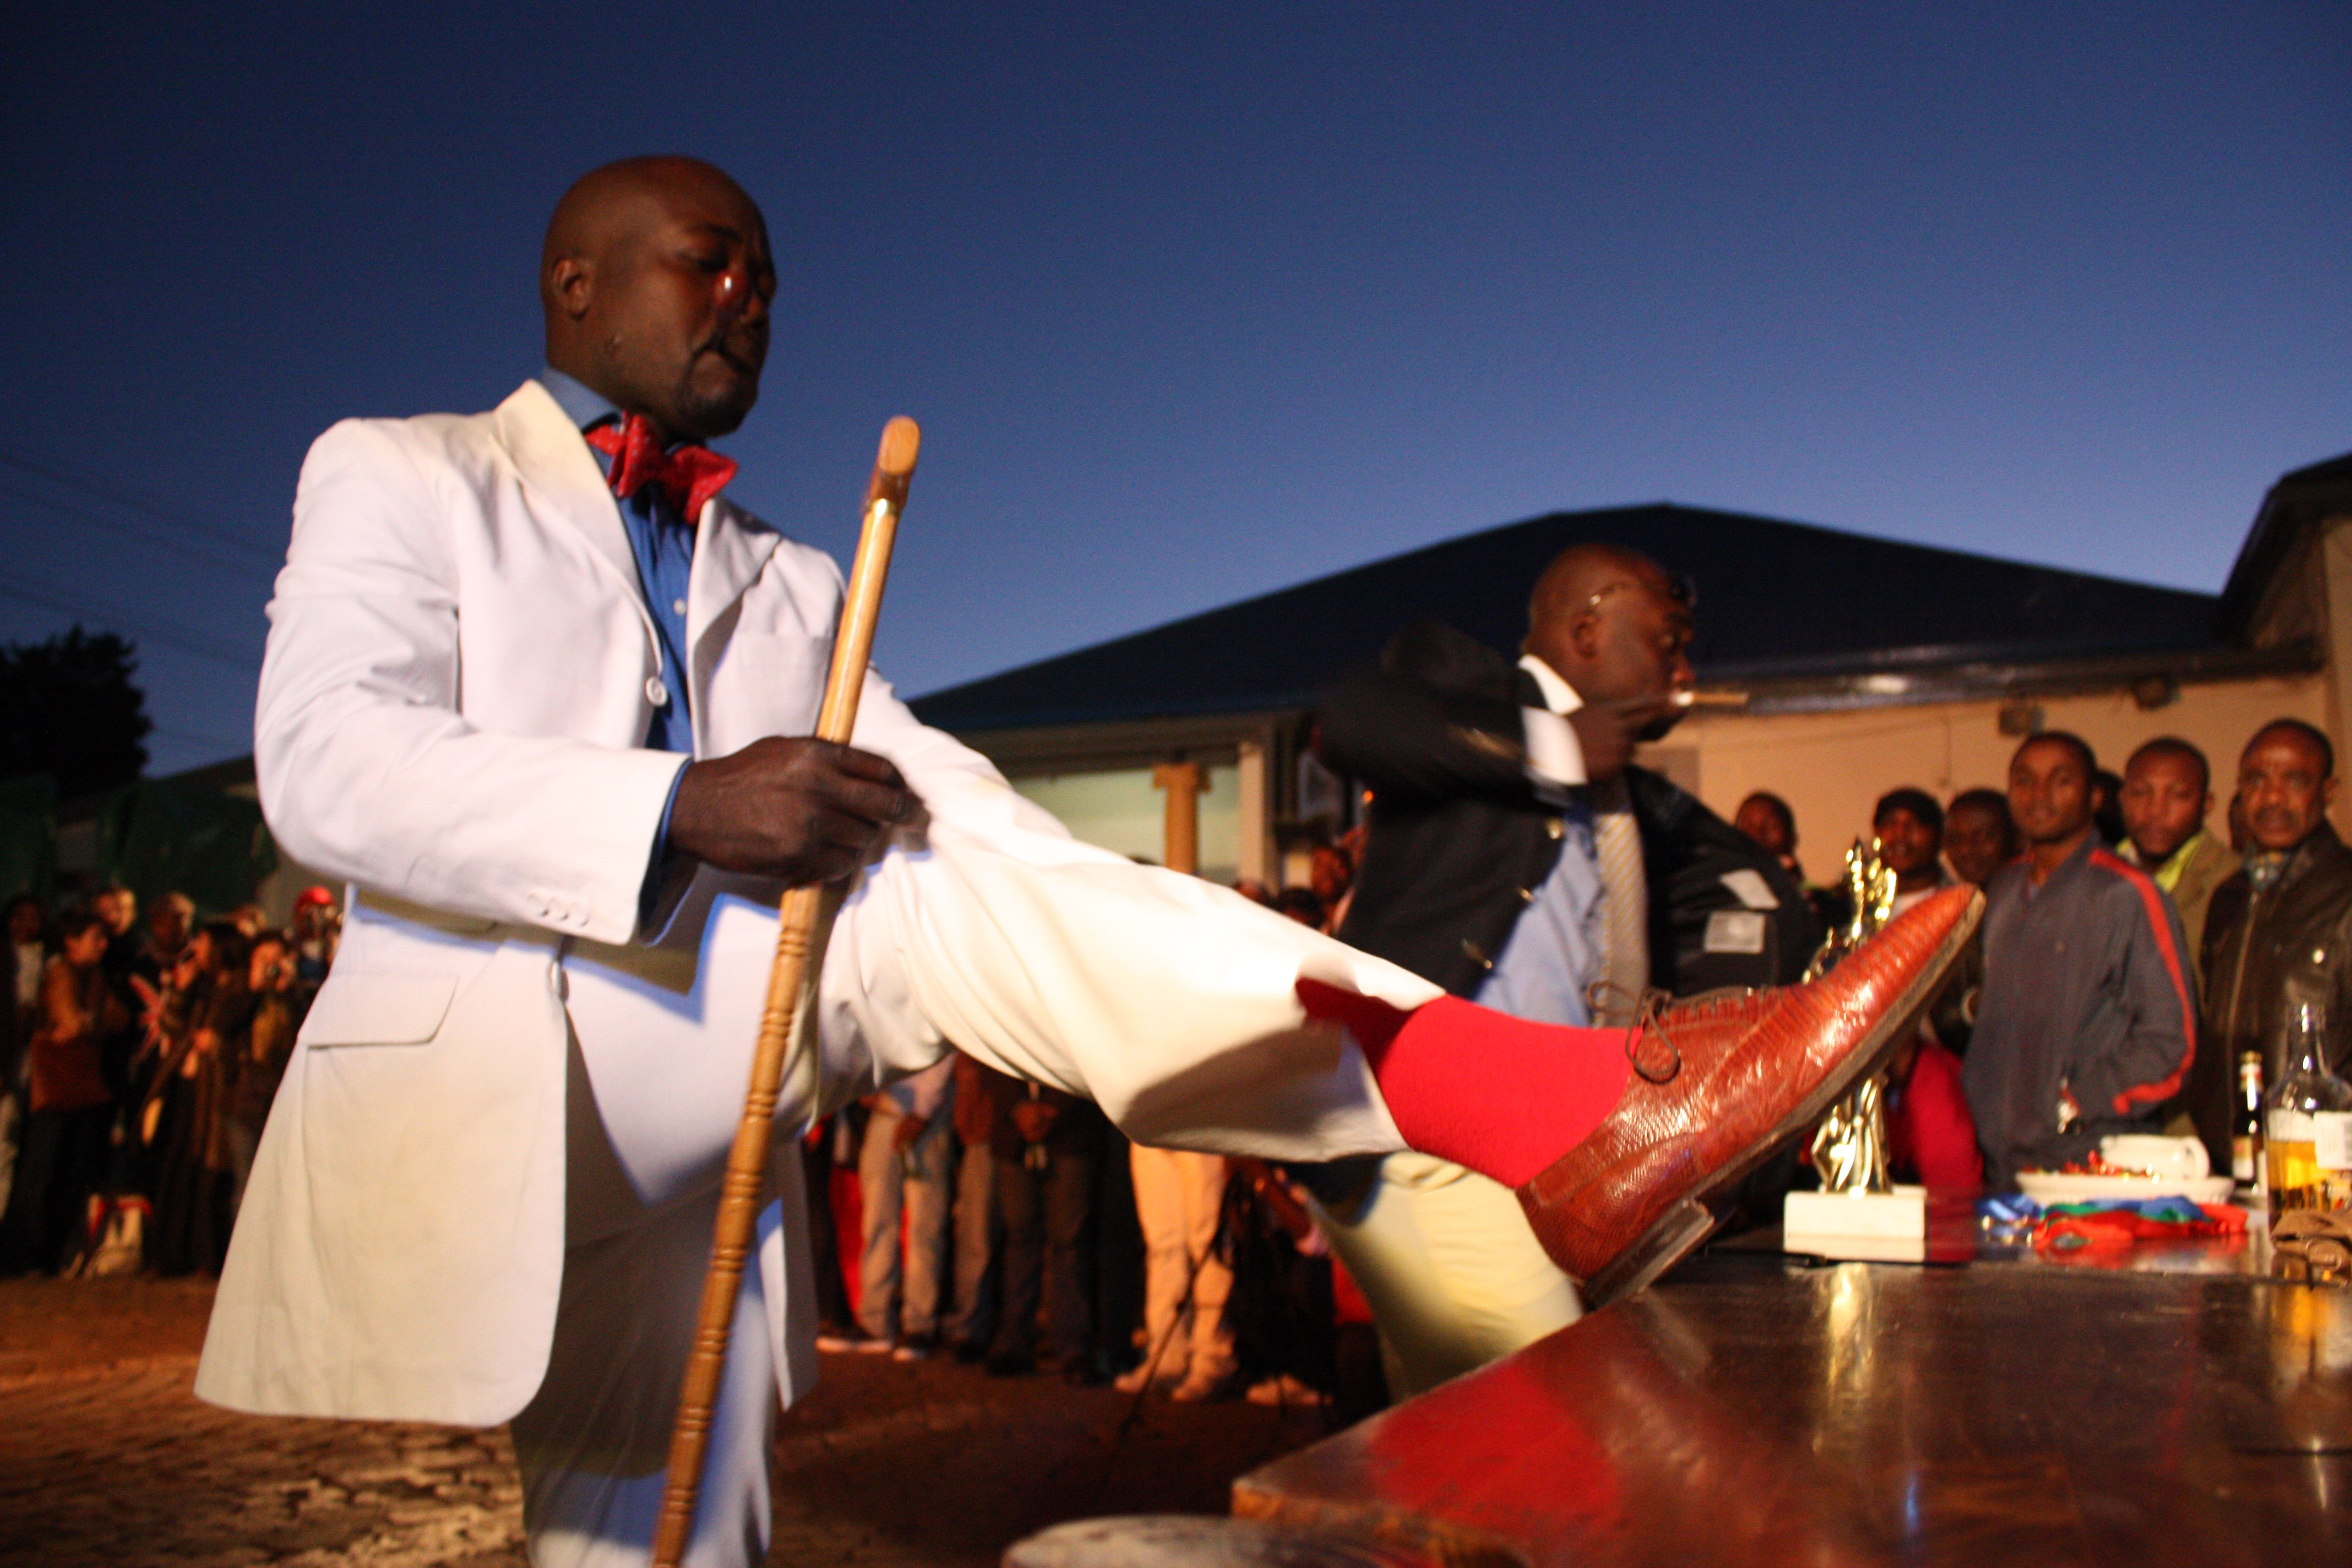 A Congolese national parades in front of fans during the La Sape competition at Kin Malebo restaurant, in Yeoville, Johannesburg South Africa, 30 May 2009. Photography Daniele Tamagni.